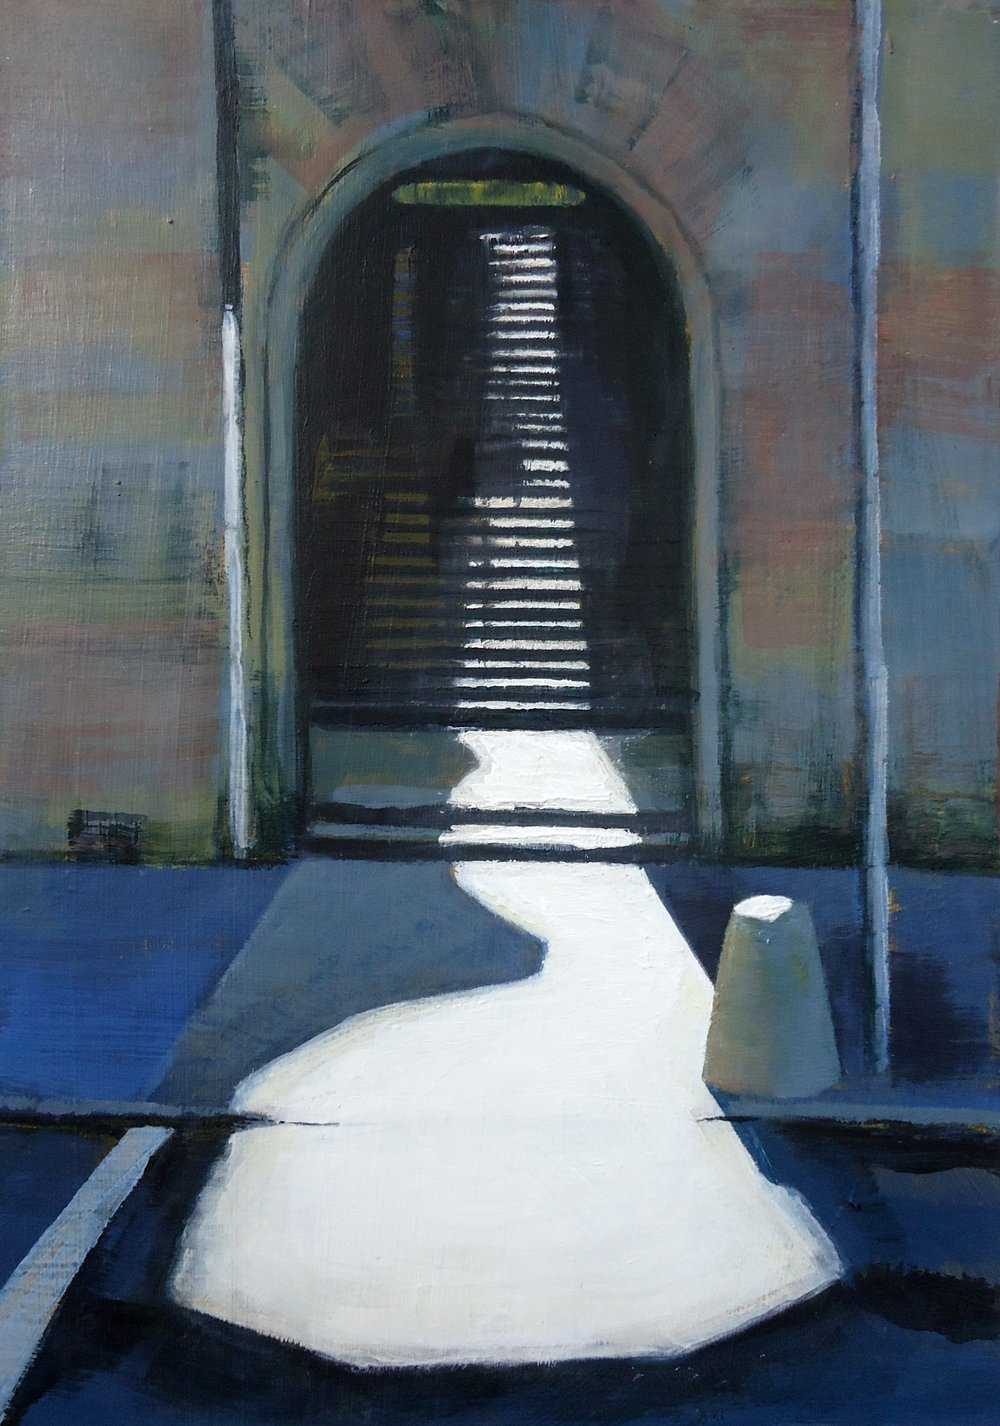 Lindsay Lavender oil and acrylic paintings arrive soon. Her expert capturing of buildings and the shadows and light play they cause have their roots in her training as an architect. She is one of Scotland's most admired artists and has works in many revered collections. Her works are either Scottish or Yorkshire scenes, she hails from Yorkshire but lives in Edinburgh these days.